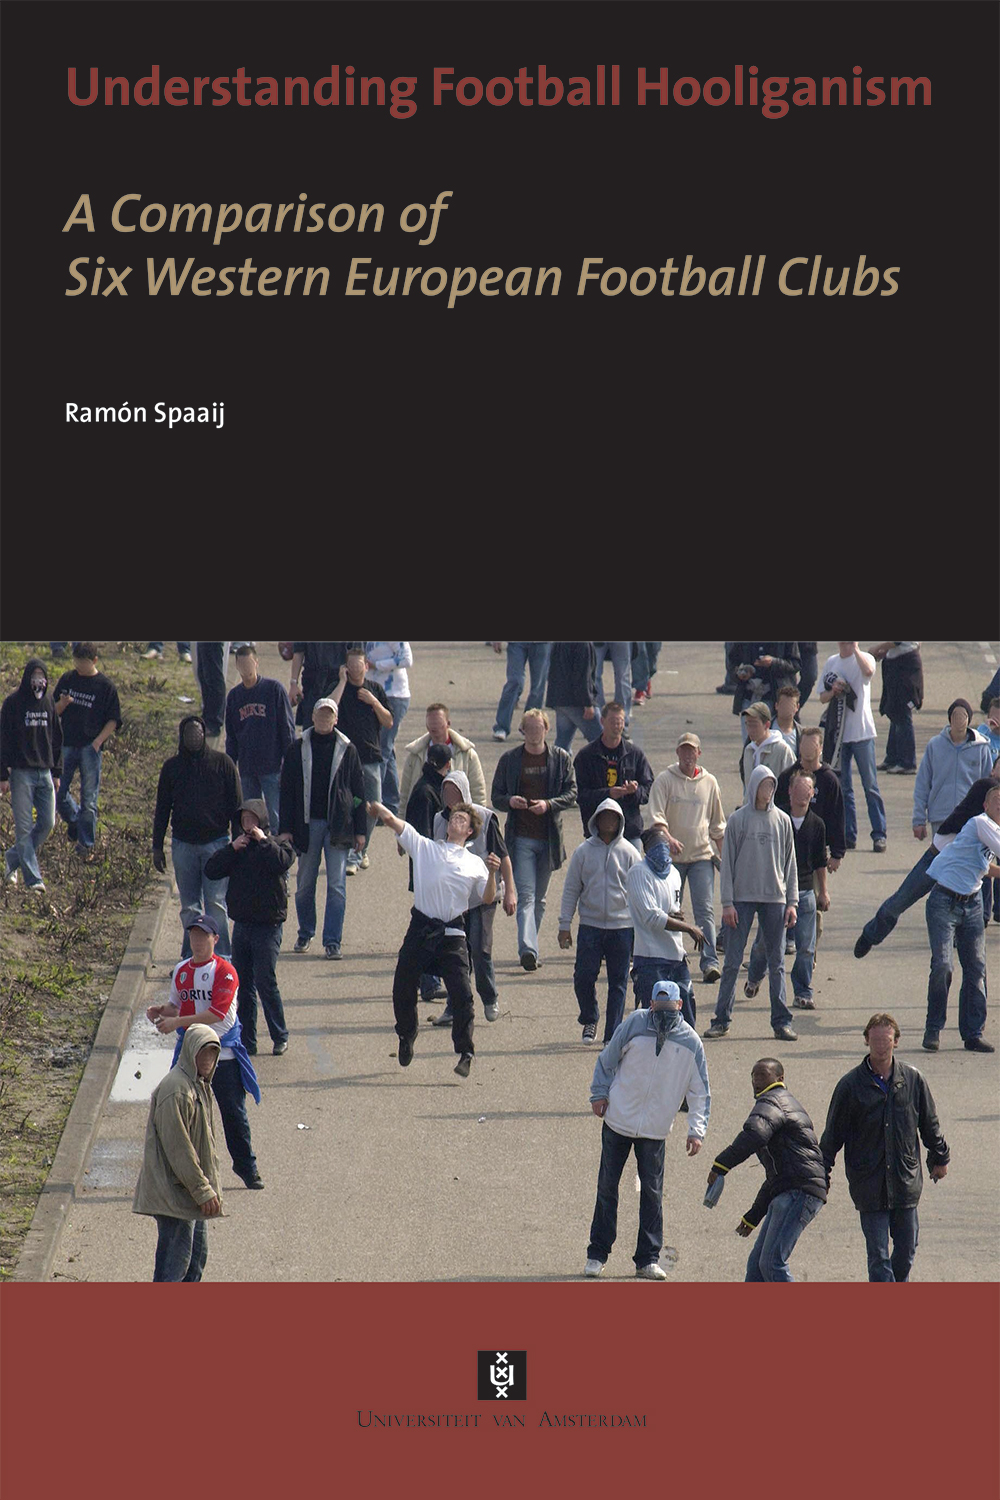 Understanding-Football-Hooliganism.jpg